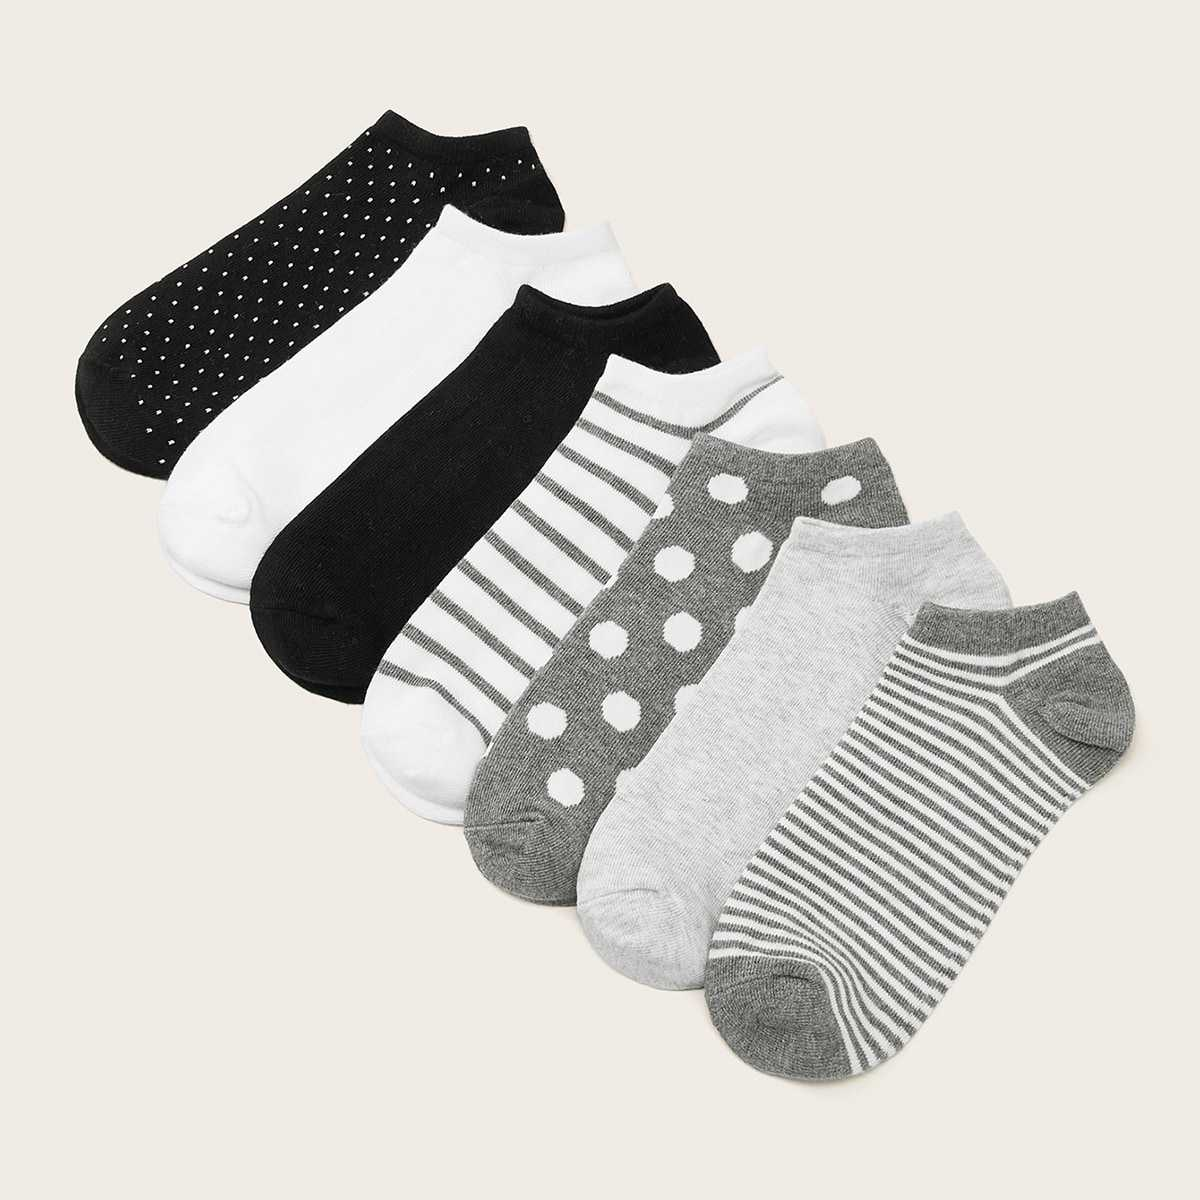 Striped & Polka Dot Pattern Socks 7pairs in Multicolor by ROMWE on GOOFASH